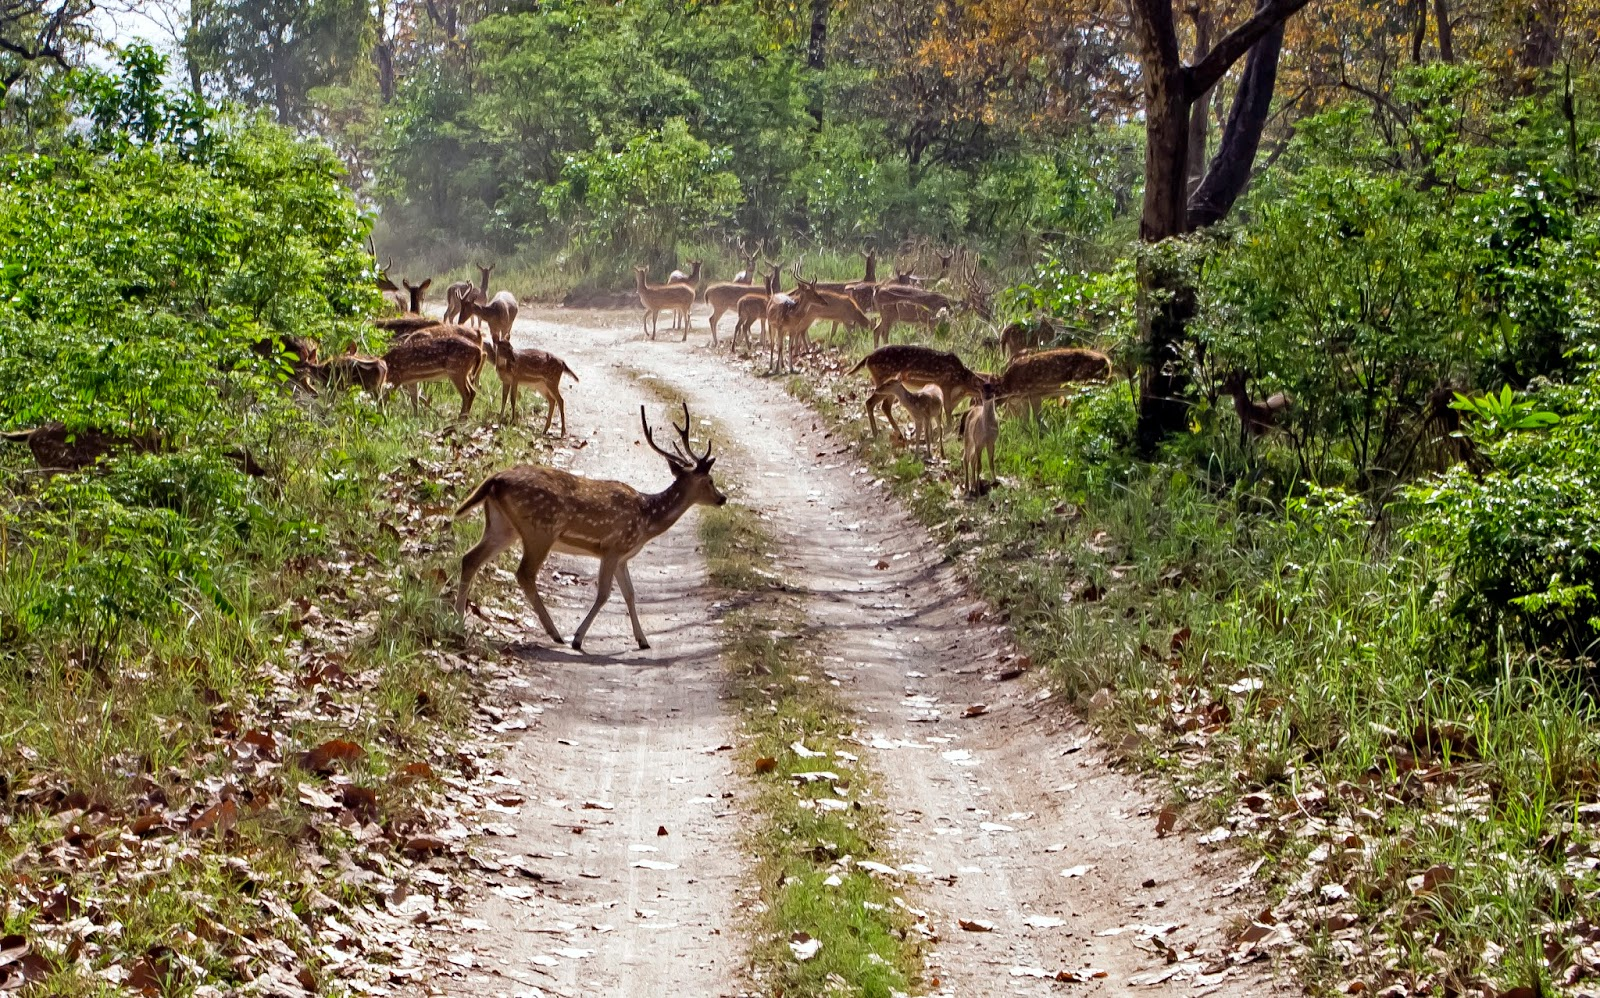 The herd of deer